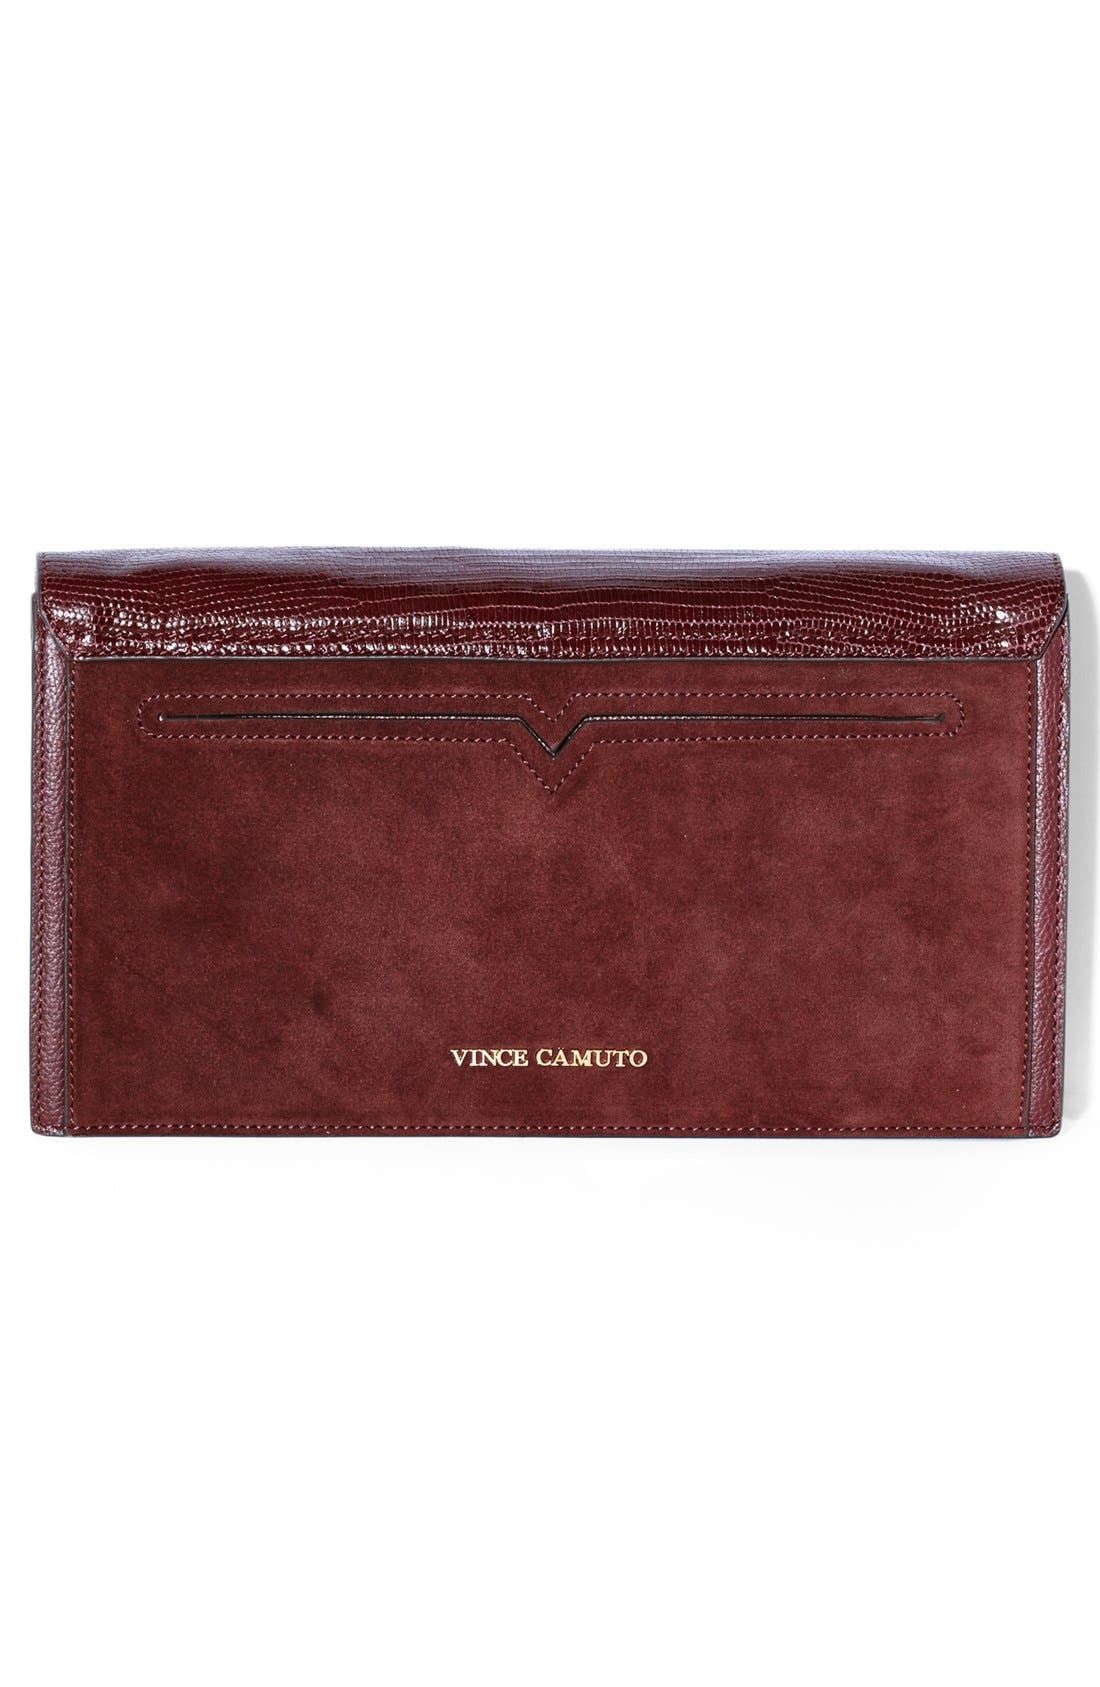 Alternate Image 3  - Vince Camuto 'Billy' Leather Clutch